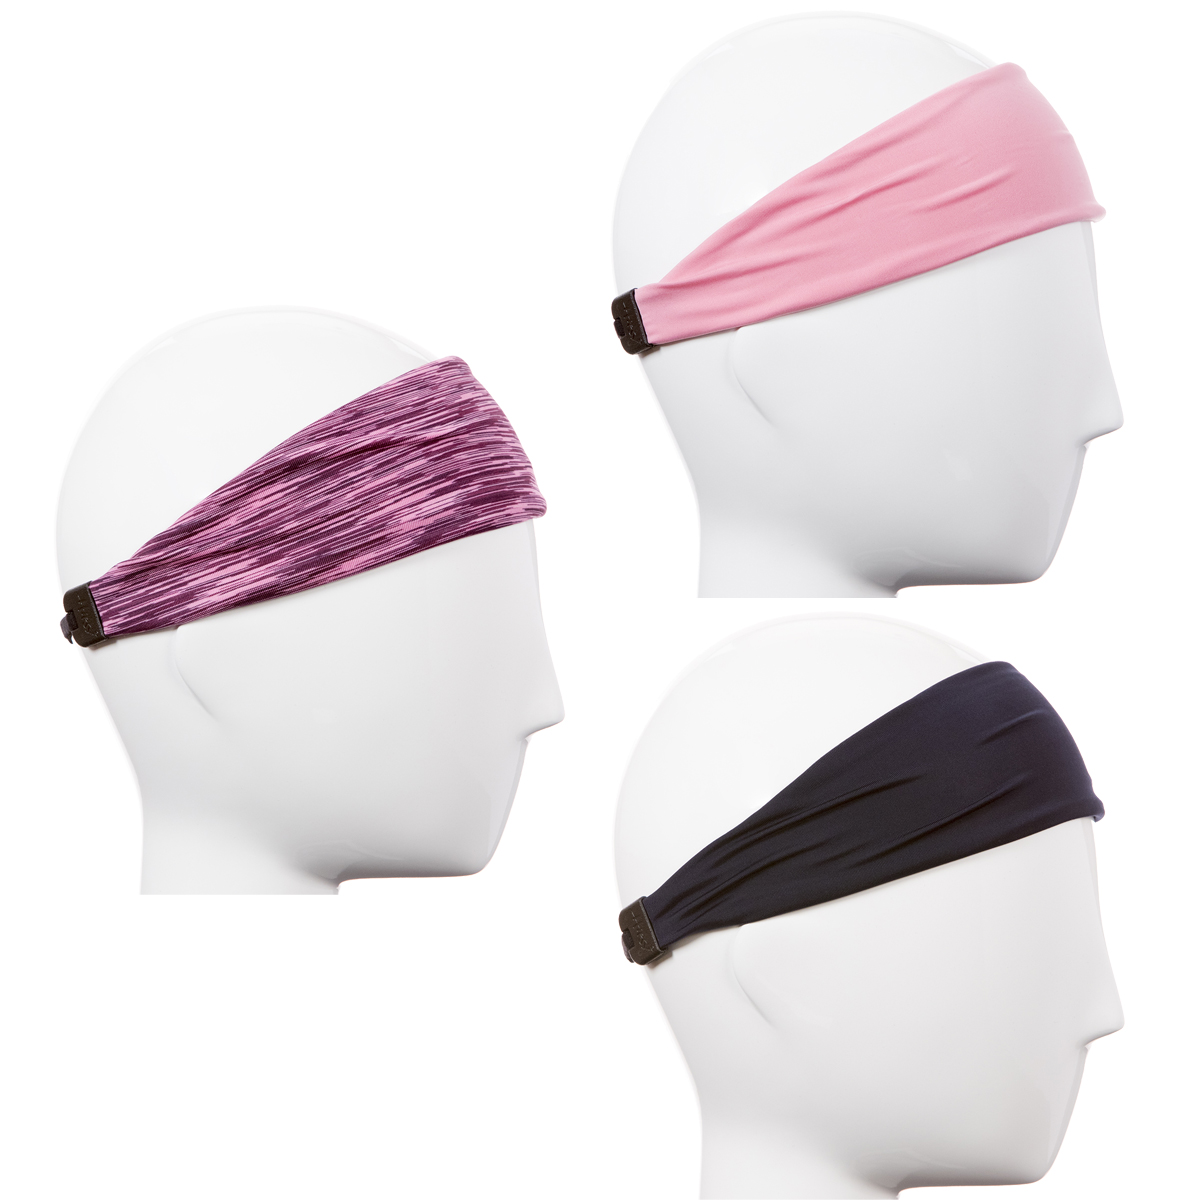 Hipsy Xflex Adjustable & Stretchy Yoga Sports Headbands for Women Gift Pack (Pink/Navy/Pink 3pk)